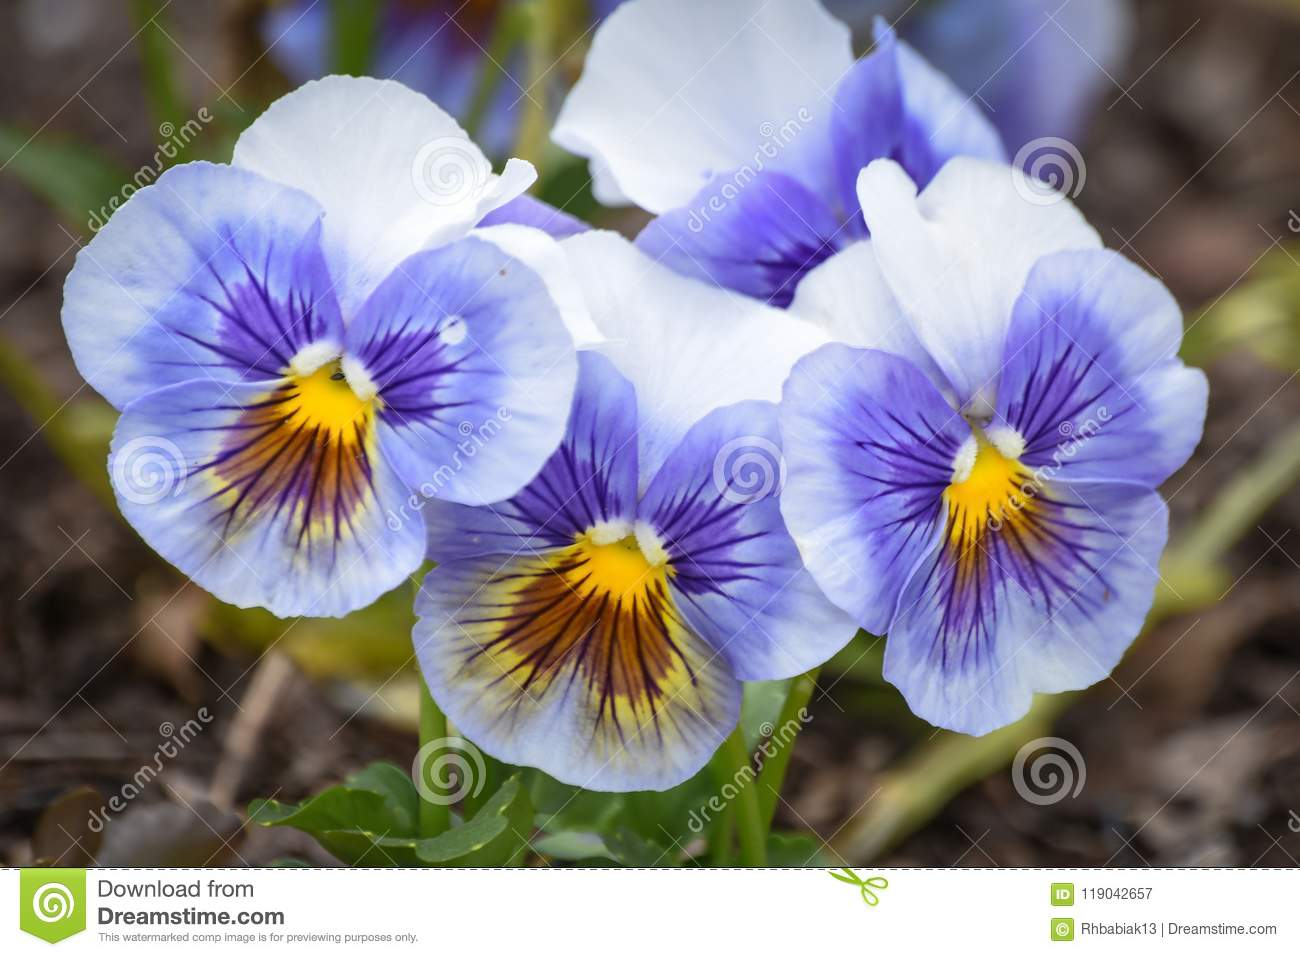 Purple, Yellow and White Pansy Flowers in Bloom